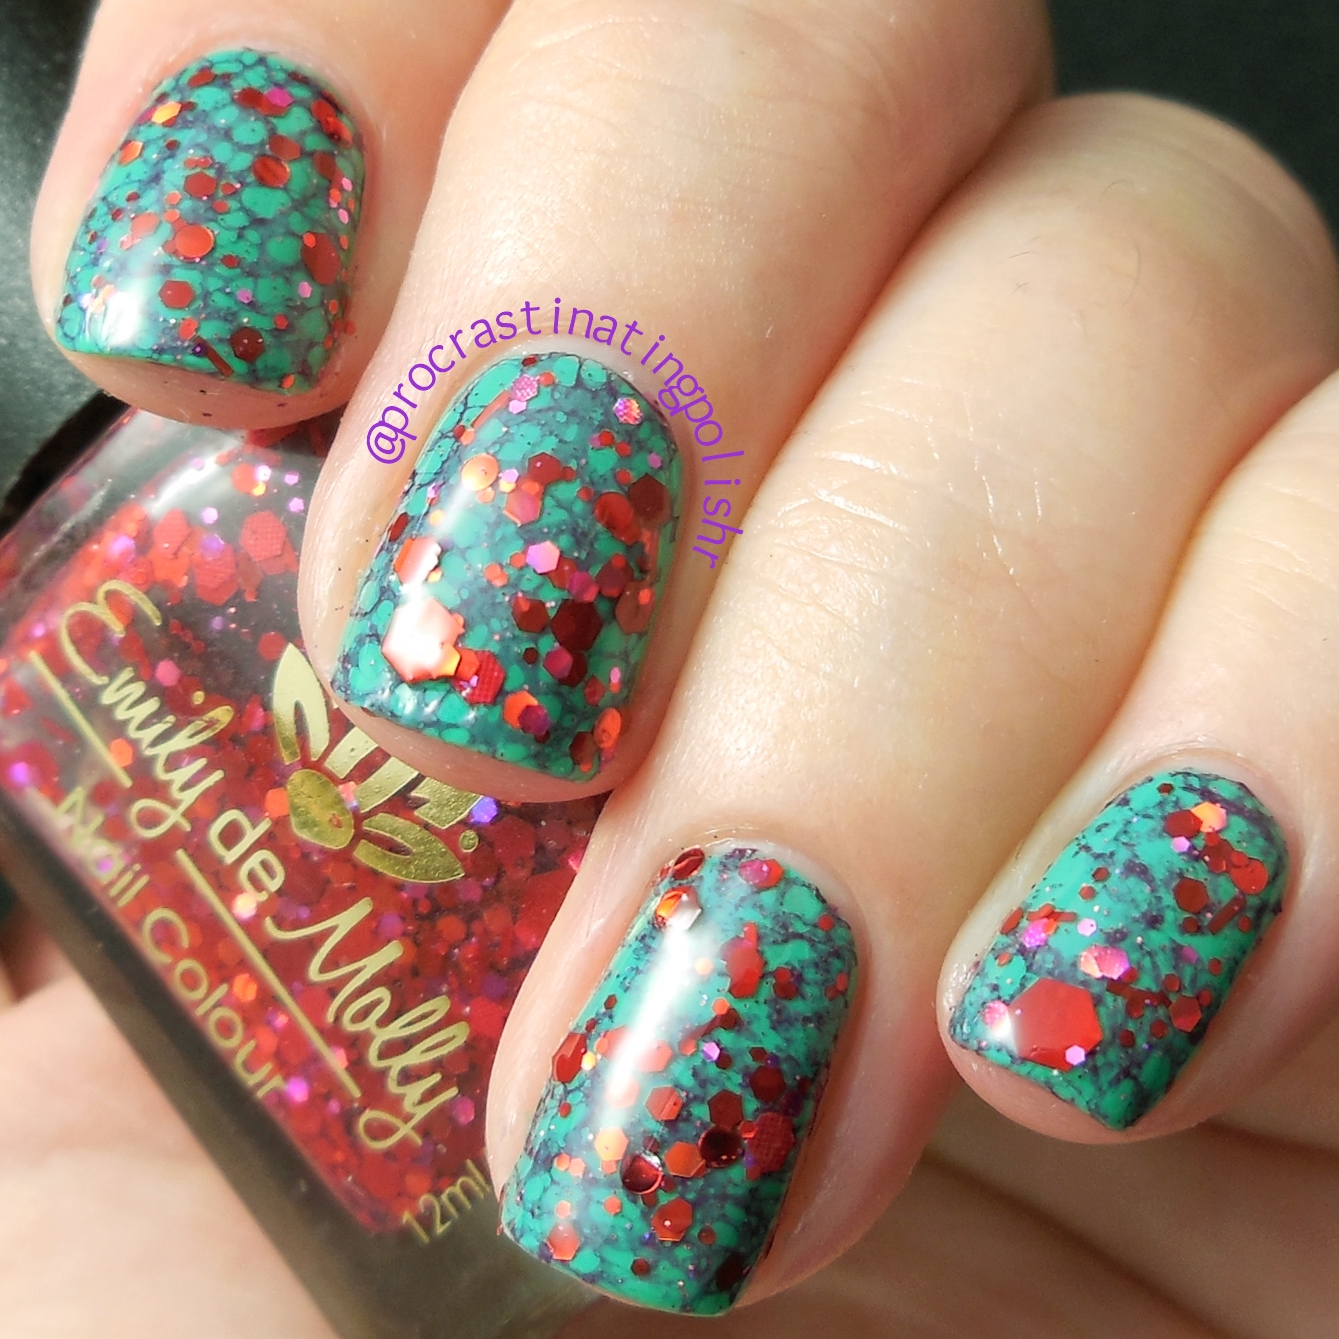 Tri Polish Tuesday - Water Spotting and Glitter